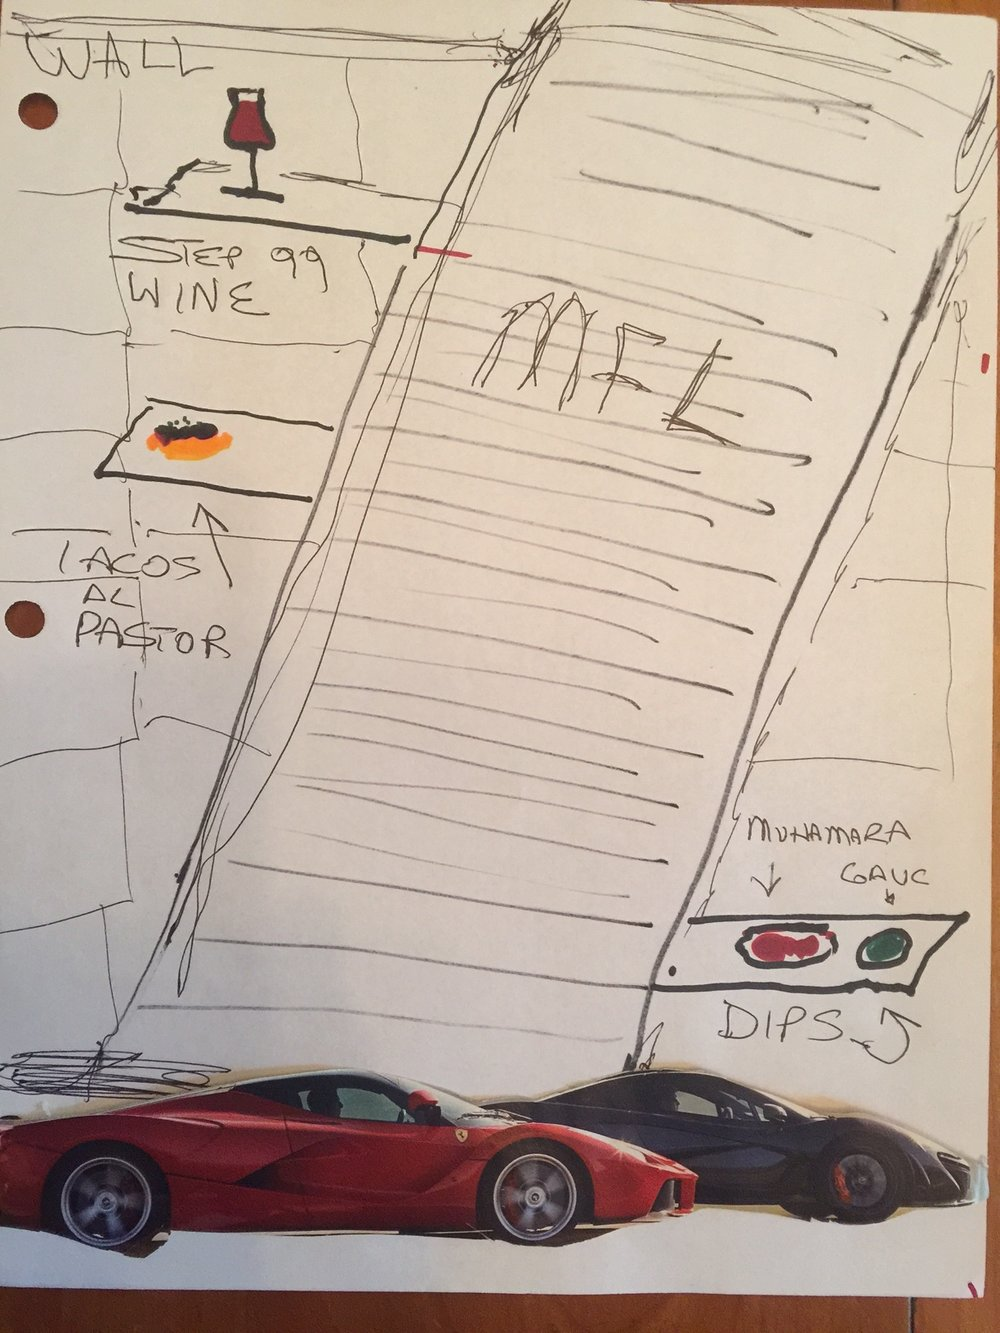 artist Mike rembrandt's rendition of Nancy Silverton's Moveable feast ladder.  (LaFerrarri and P1 mclaren drawn to scale)